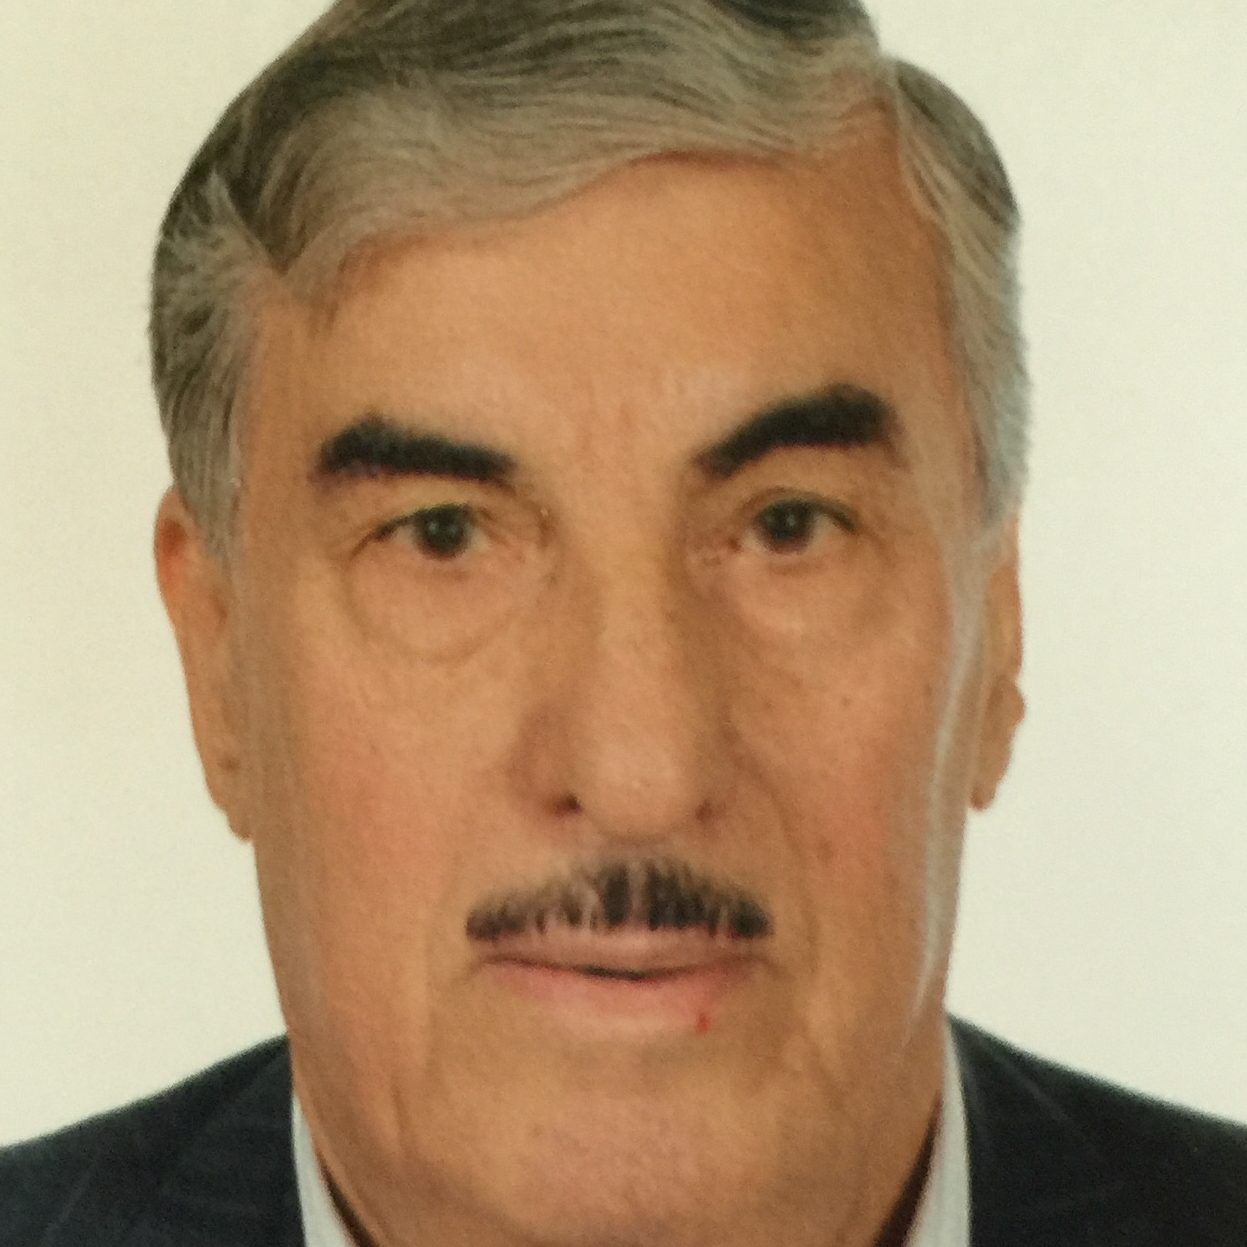 Azez Jaafar Hassan - Former Deputy Minister of Finance and Advisor to the Vice President, Republic of Iraq